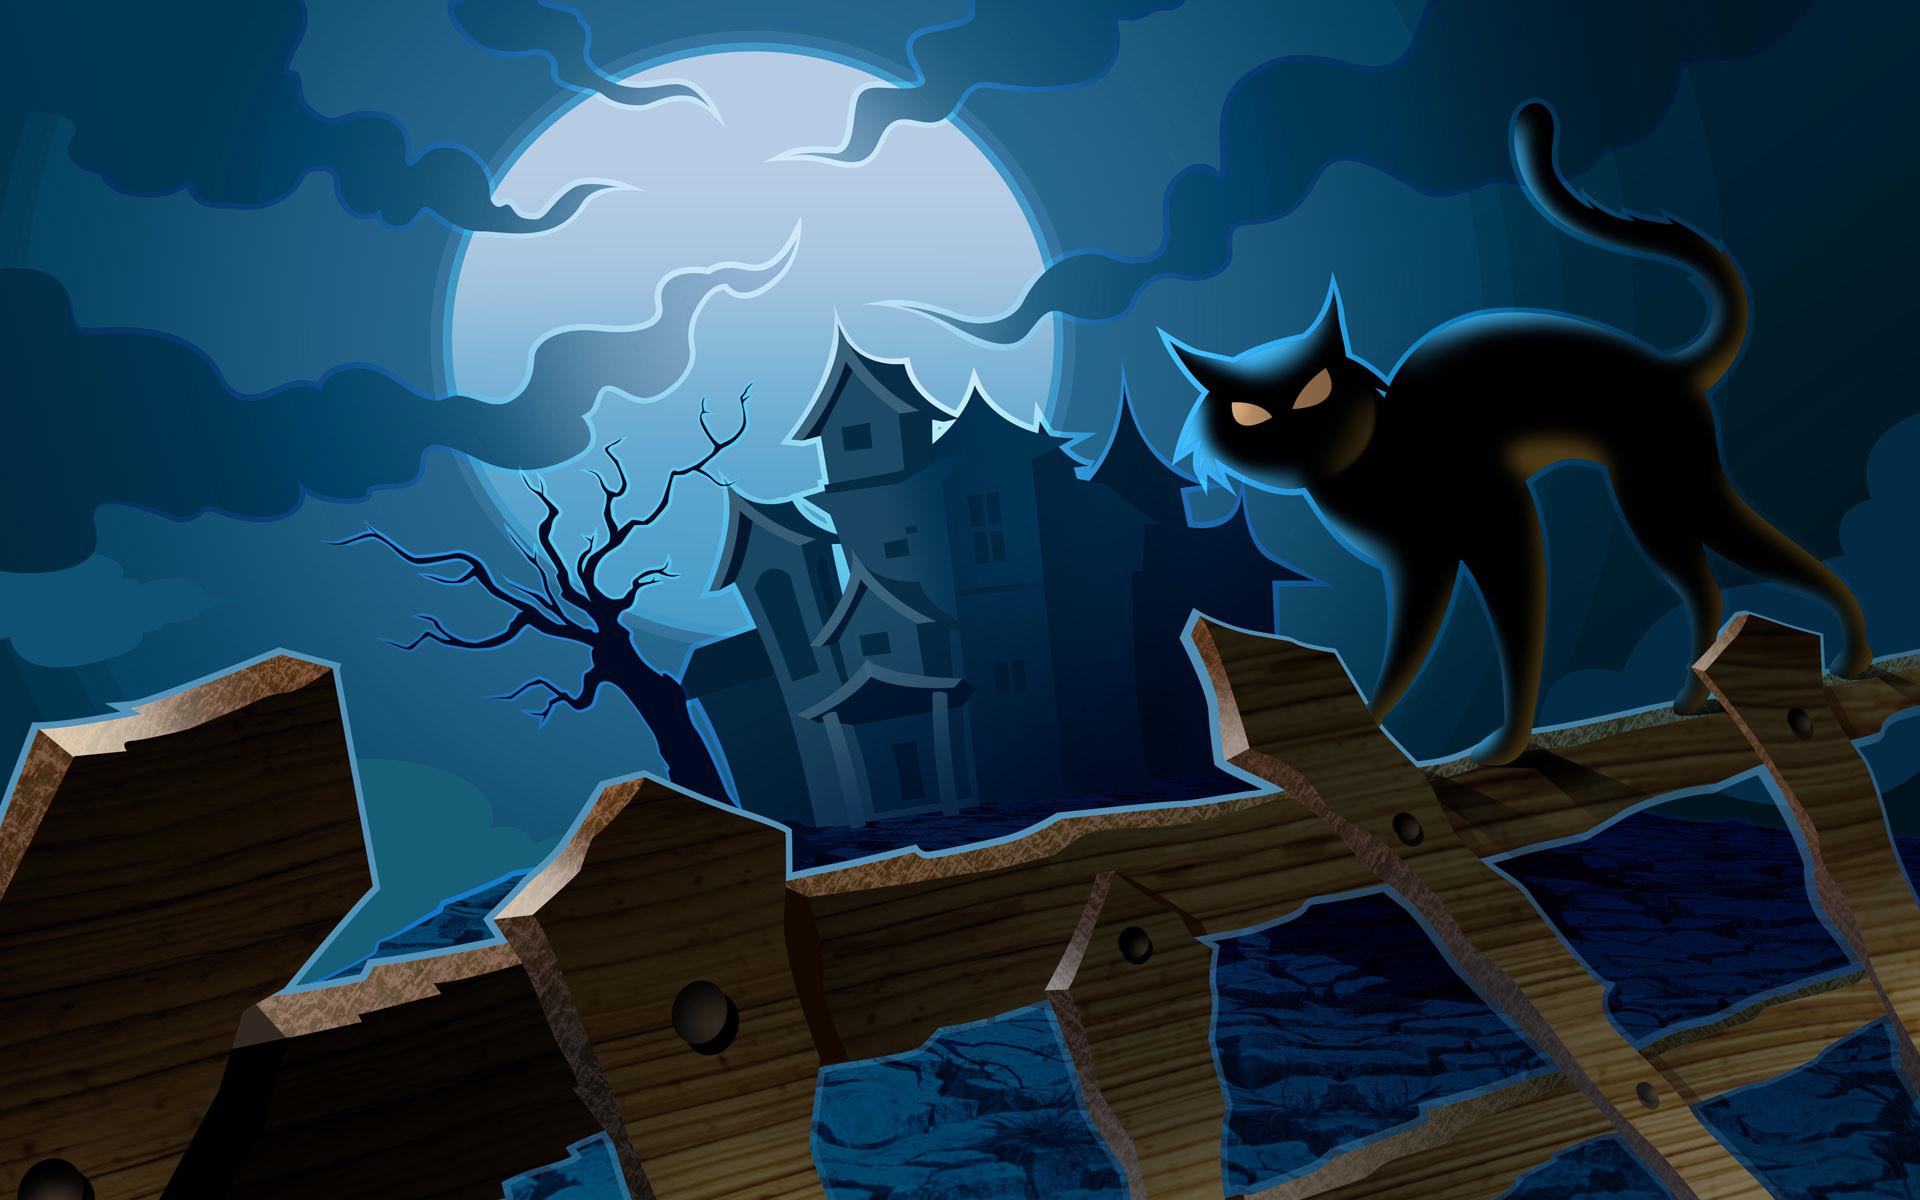 Wallpapers | Pumpkins, Witches, Spider Web, Bats & Ghosts Collection .